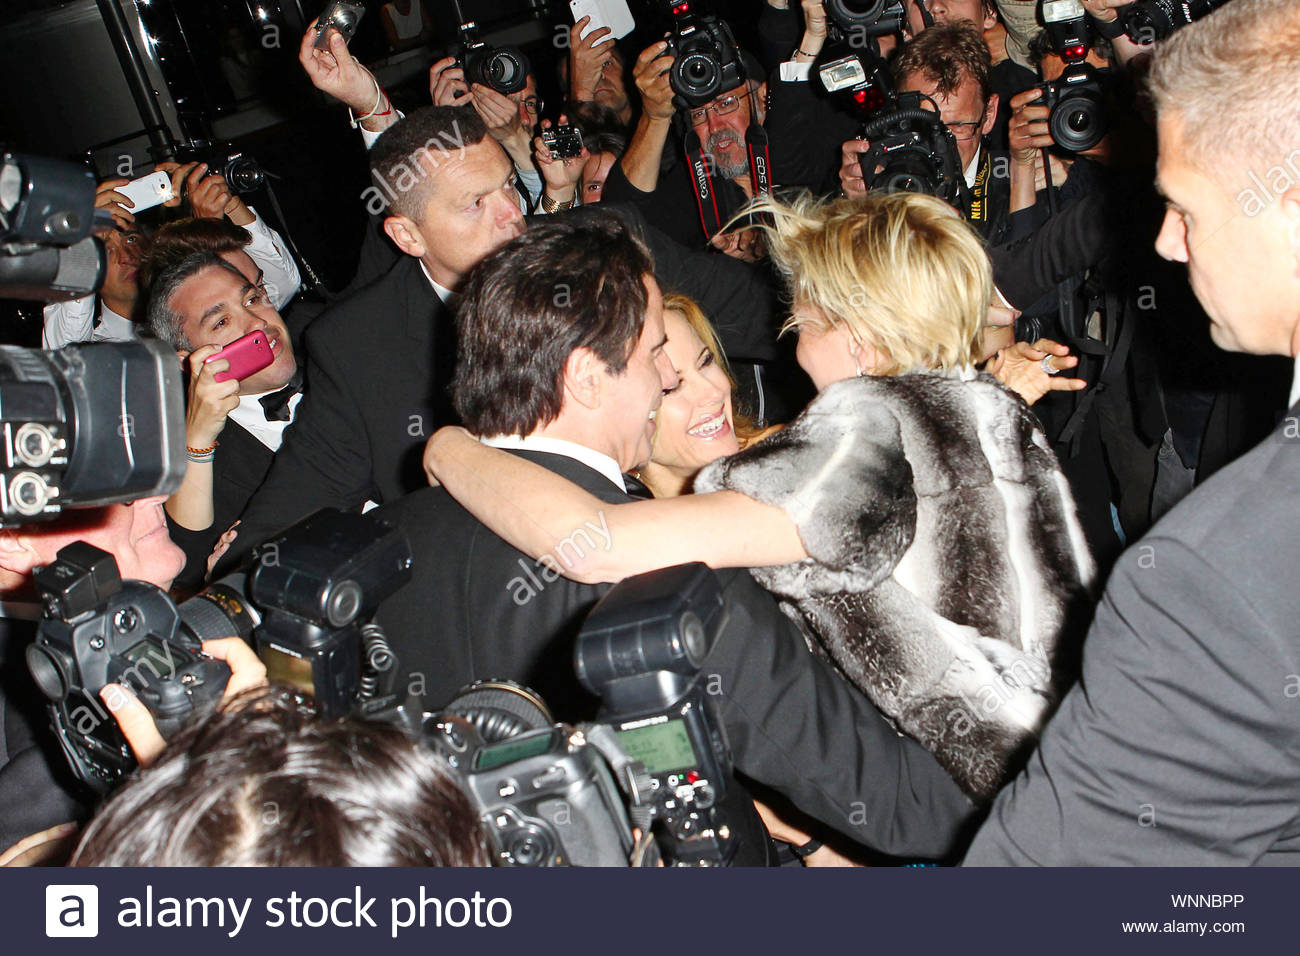 Cannes, France - John Travolta and Kelly Prestoni at Roberto Cavalli's annual yacht party at Cannes Harbor during the 67th Annual Cannes Film Festival in Cannes, France. AKM-GSI May 21, 2014 Stock Photo